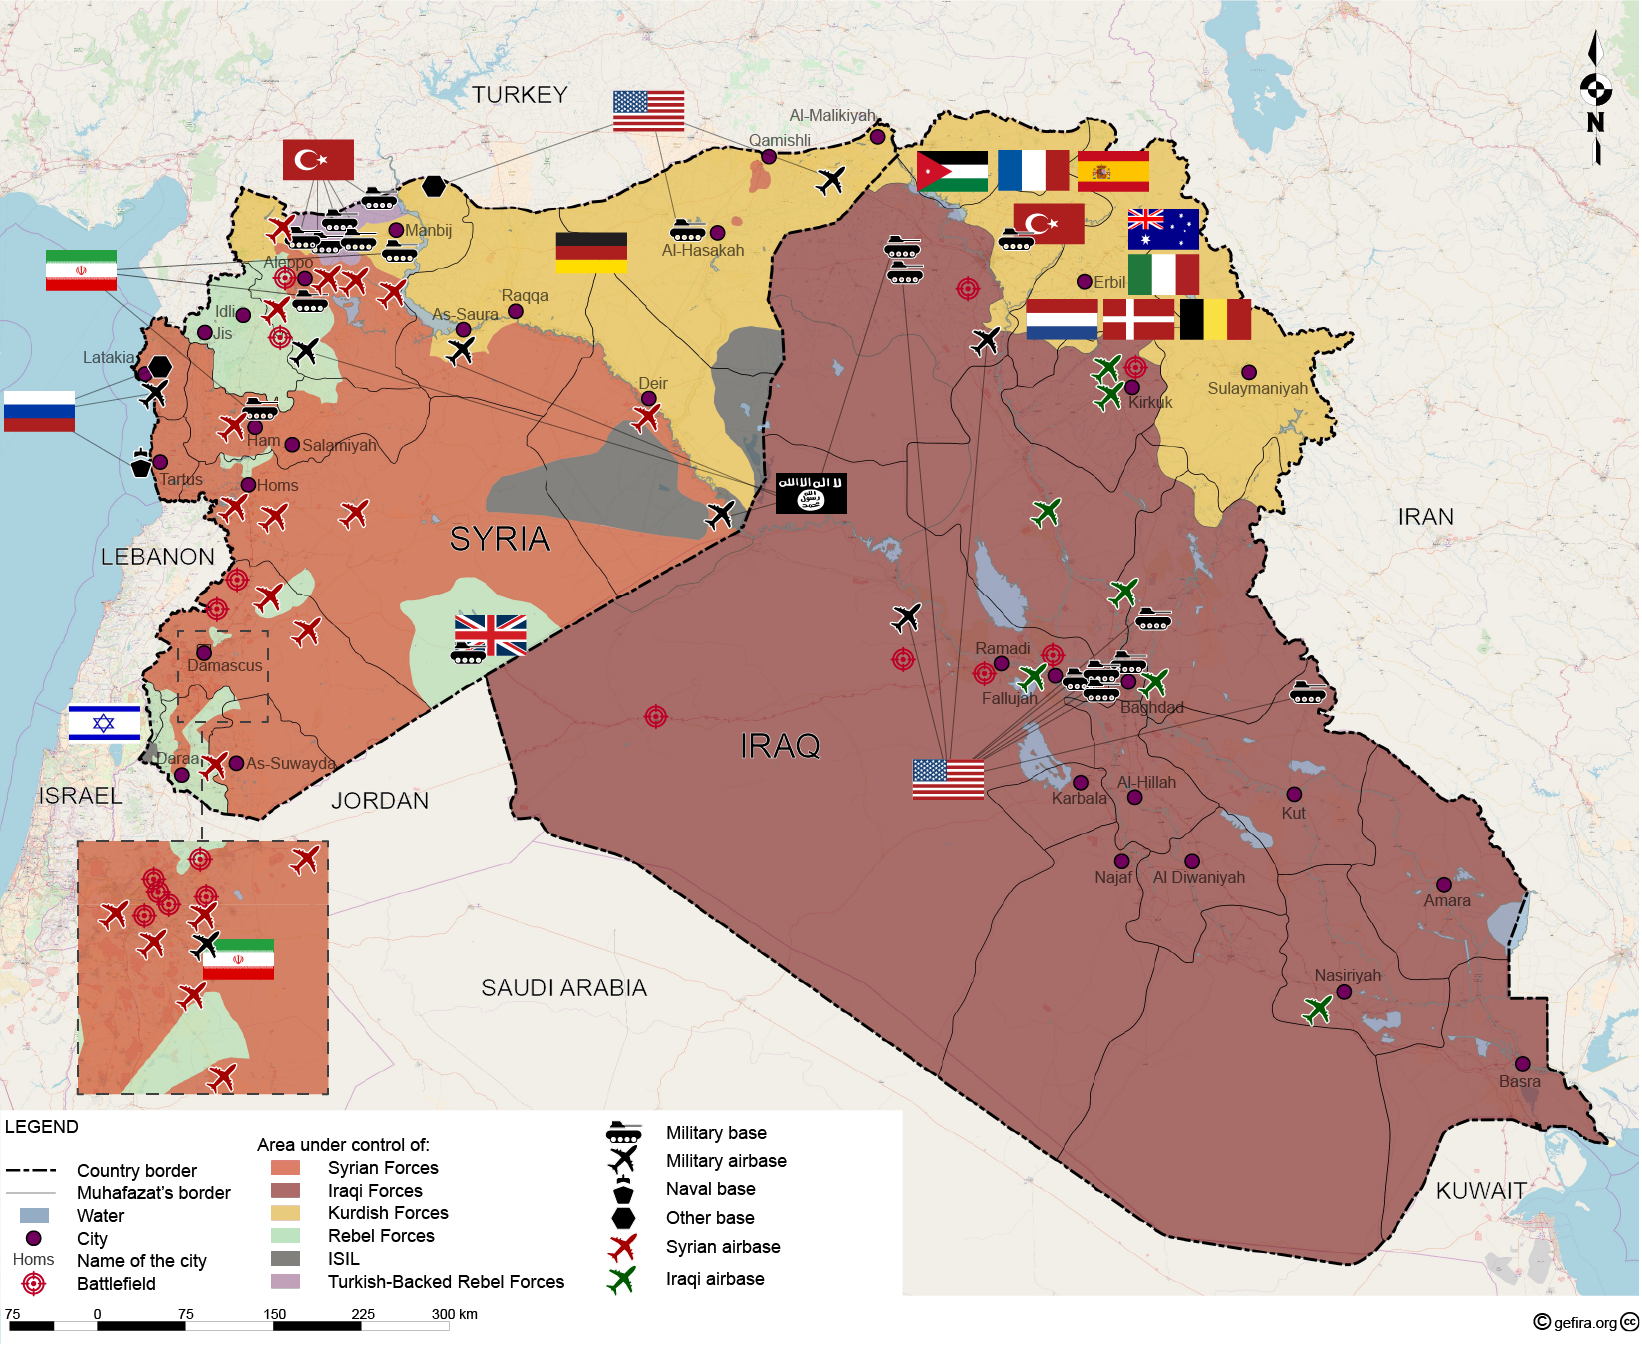 World war iii in syria and iraq map gefira world war iii in syria and iraq map source gefira gumiabroncs Choice Image